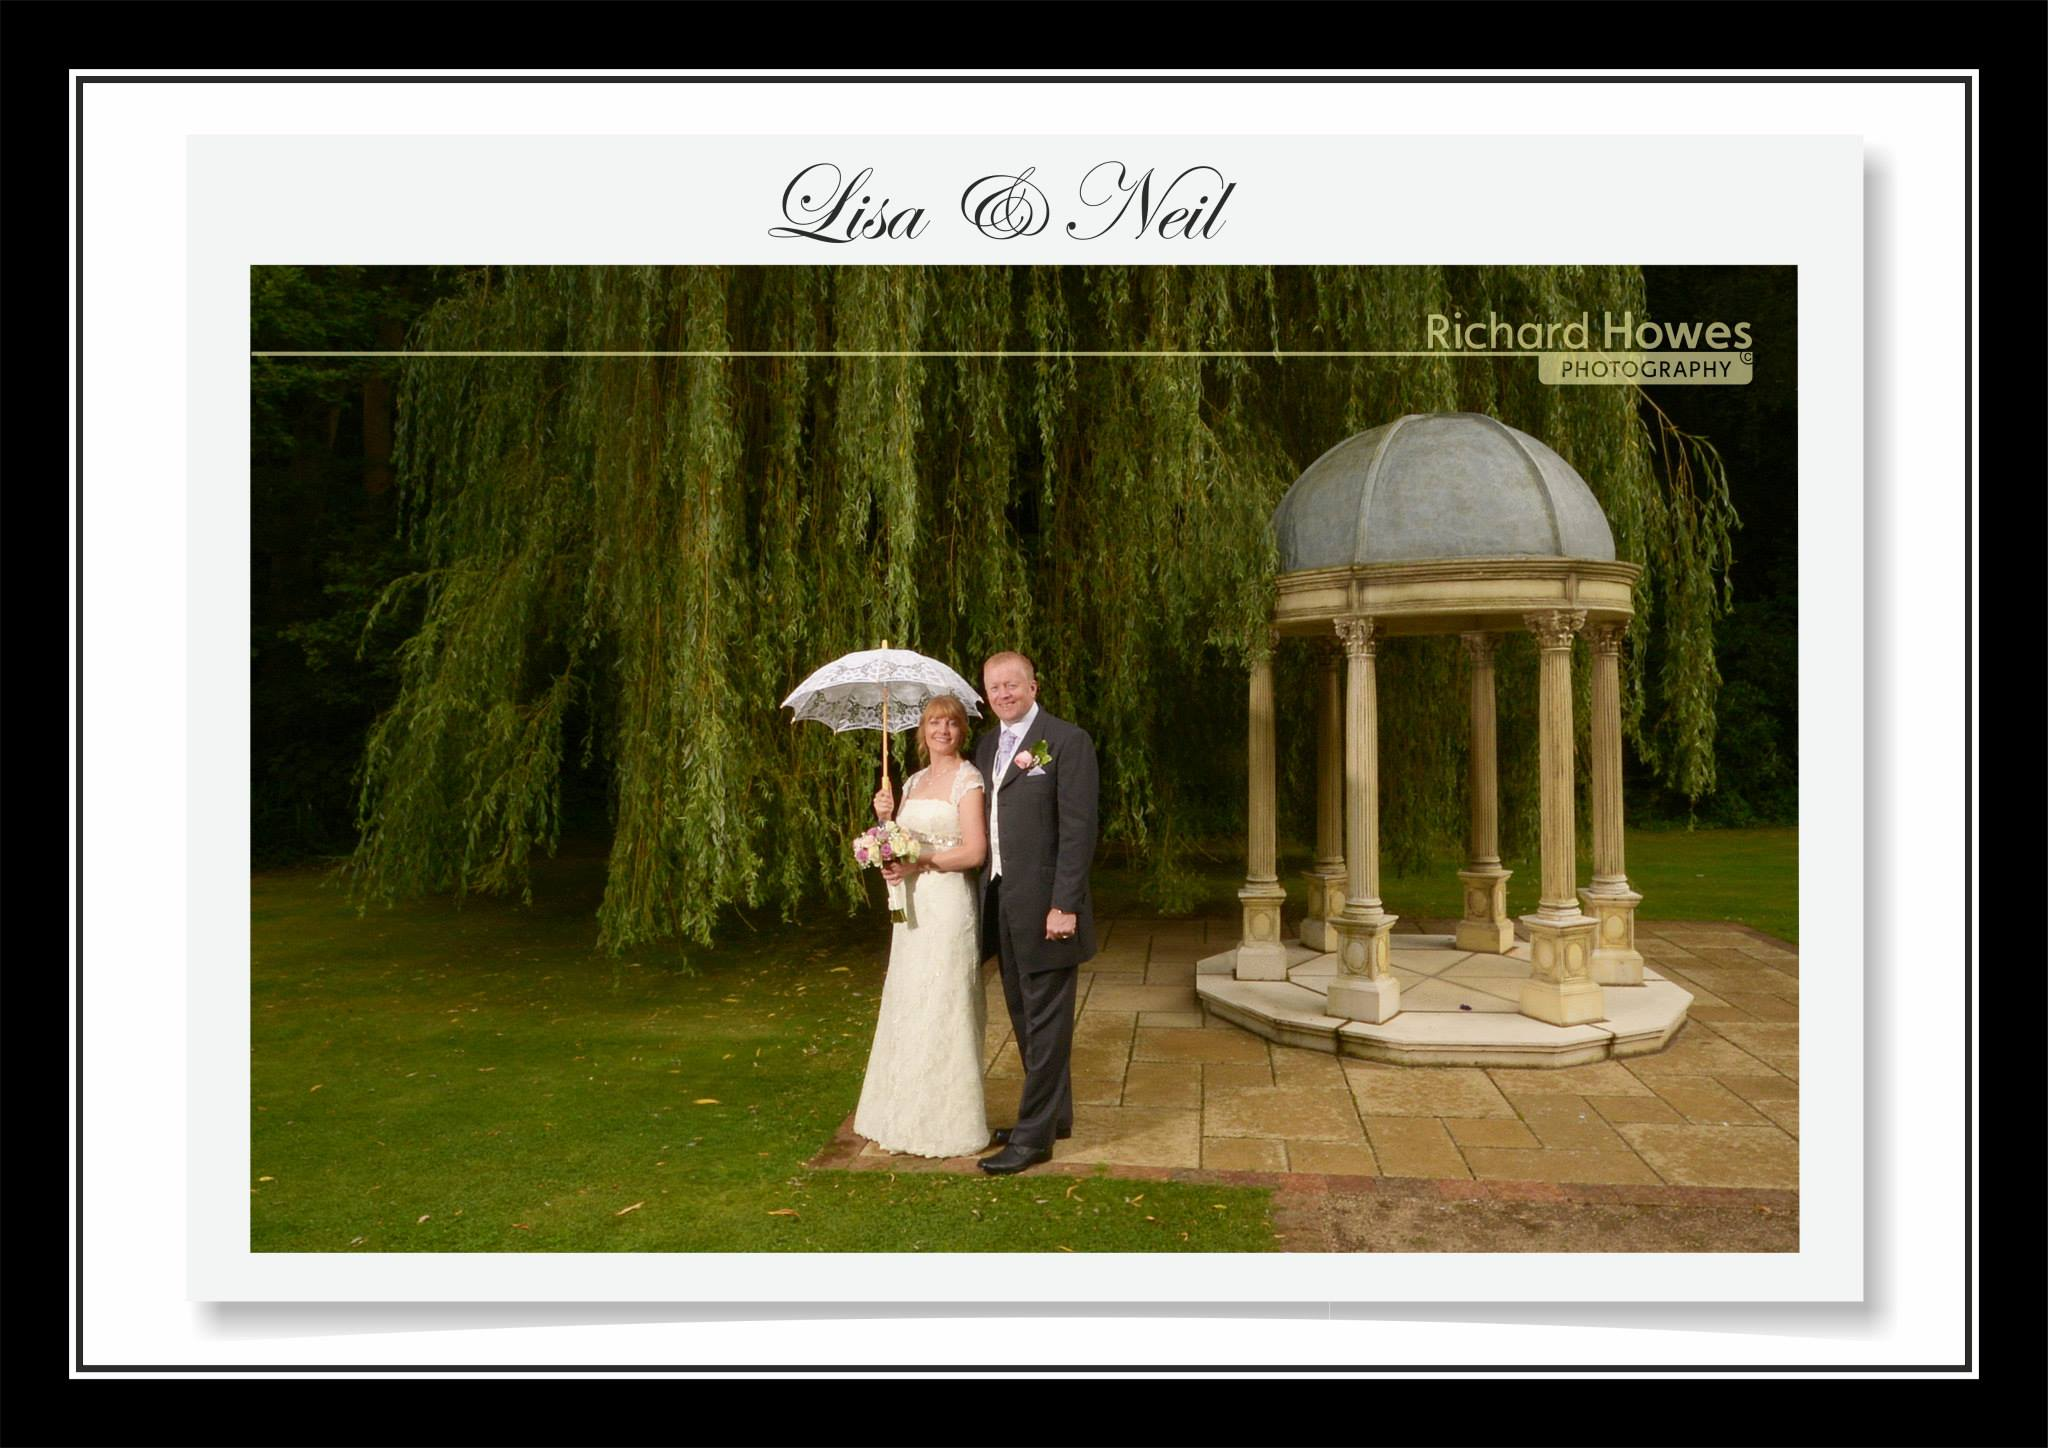 Congratulations to Lisa & Neil Holt, who married and had a reception at the Dower House in Woodhall Spa.